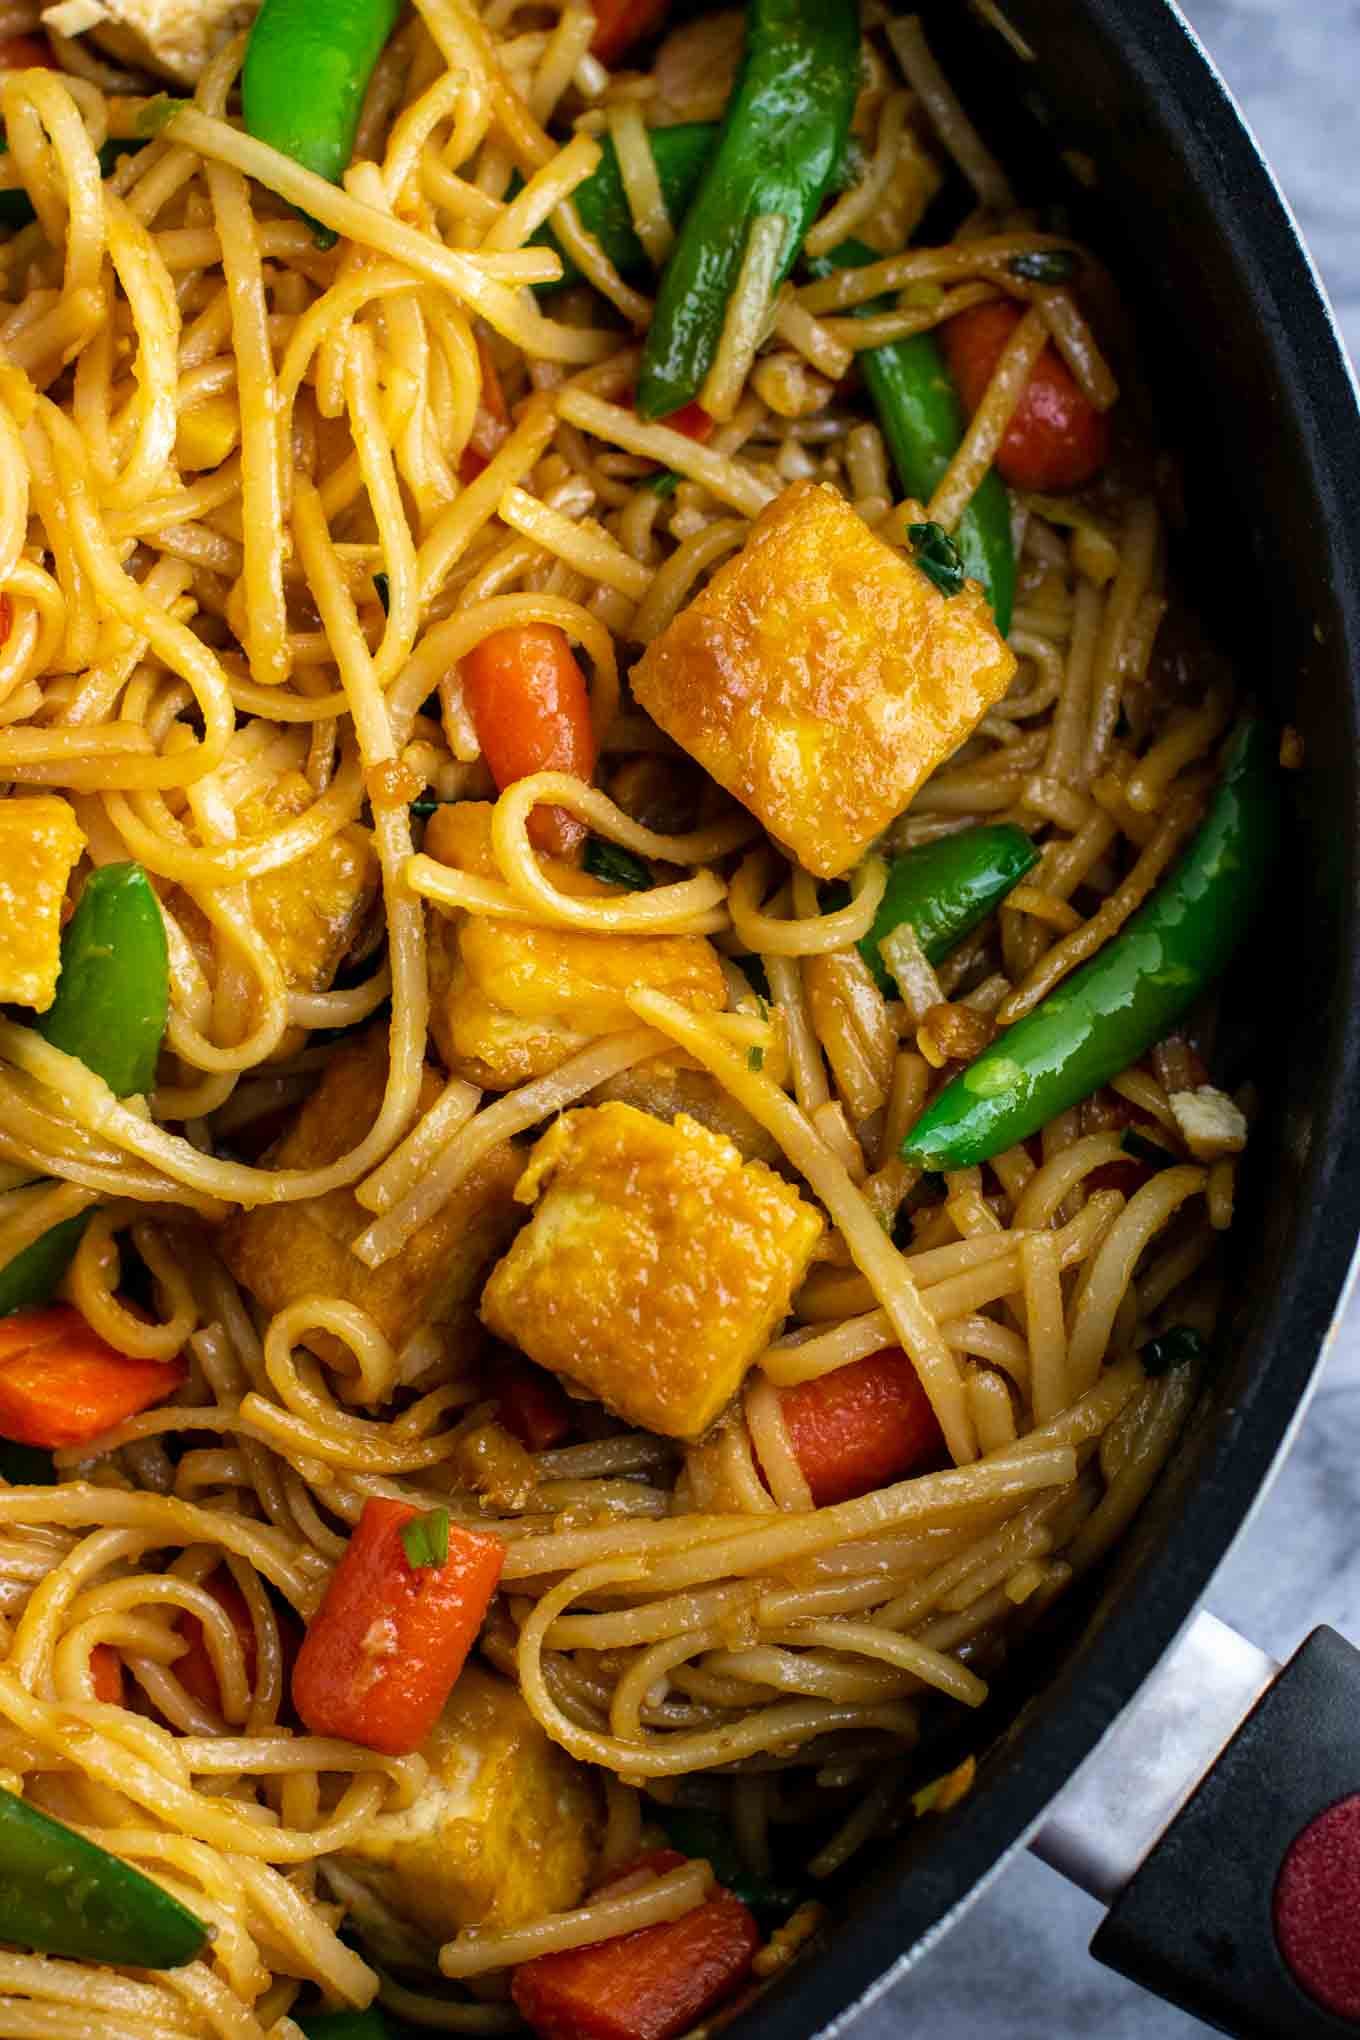 Vegan stir fry noodles with sugar snap peas and carrots. Homemade 3 ingredient stir fry sauce makes this taste amazing! #tofu #stirfrynoodles #stirfry #vegan #dinner #stirfryrecipe #vegetarian #tofustirfy